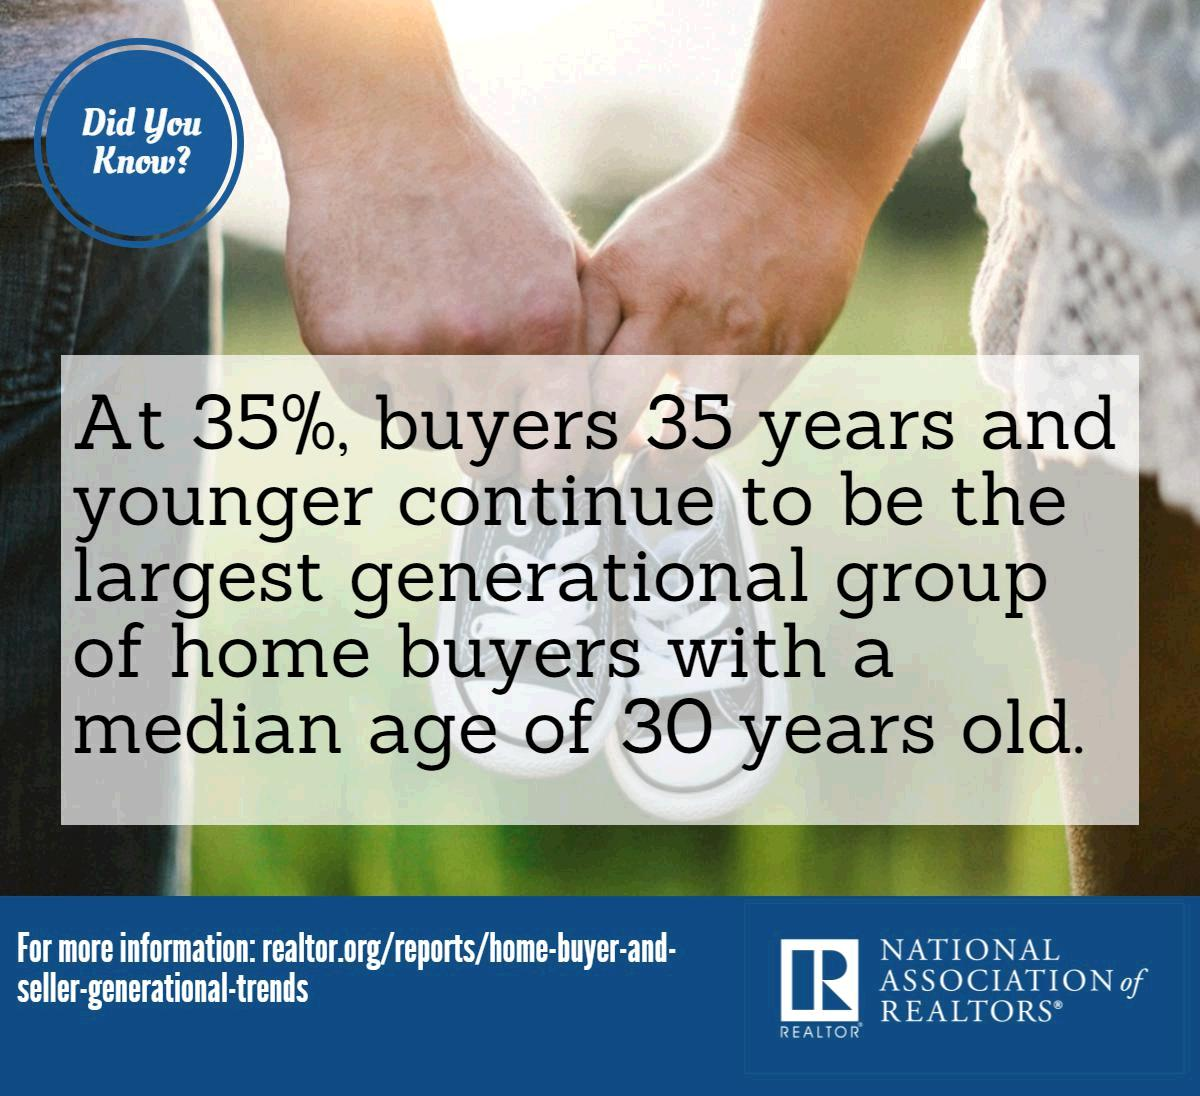 Did you know? At 35%, buyers 35 and younger continue to be the largest generational group of buyers. #NARGenTrends https://t.co/0ZFj5Ind61